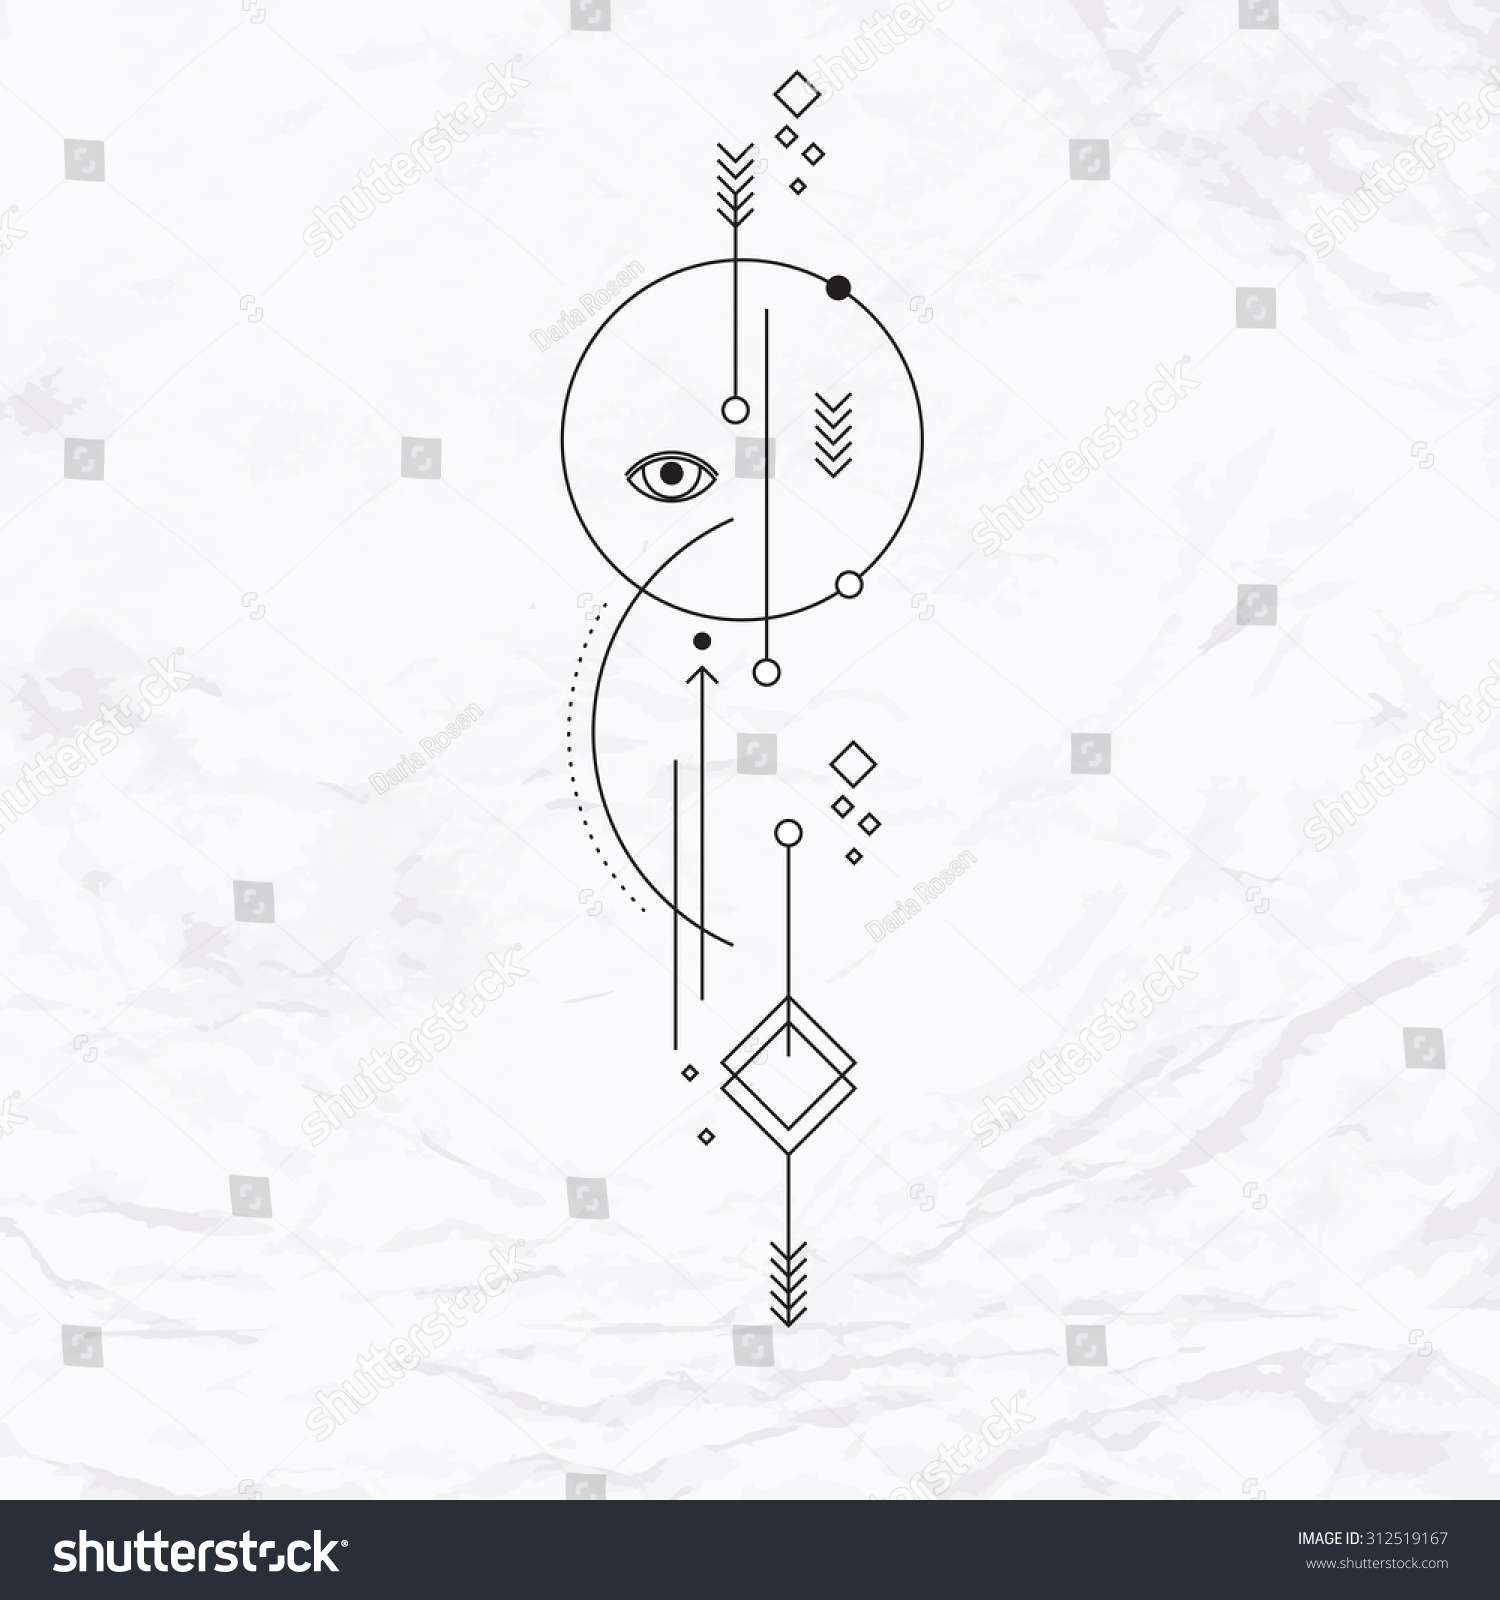 Abstract Mystic Sign Geometric Shapes Arrows Stock Vector ...